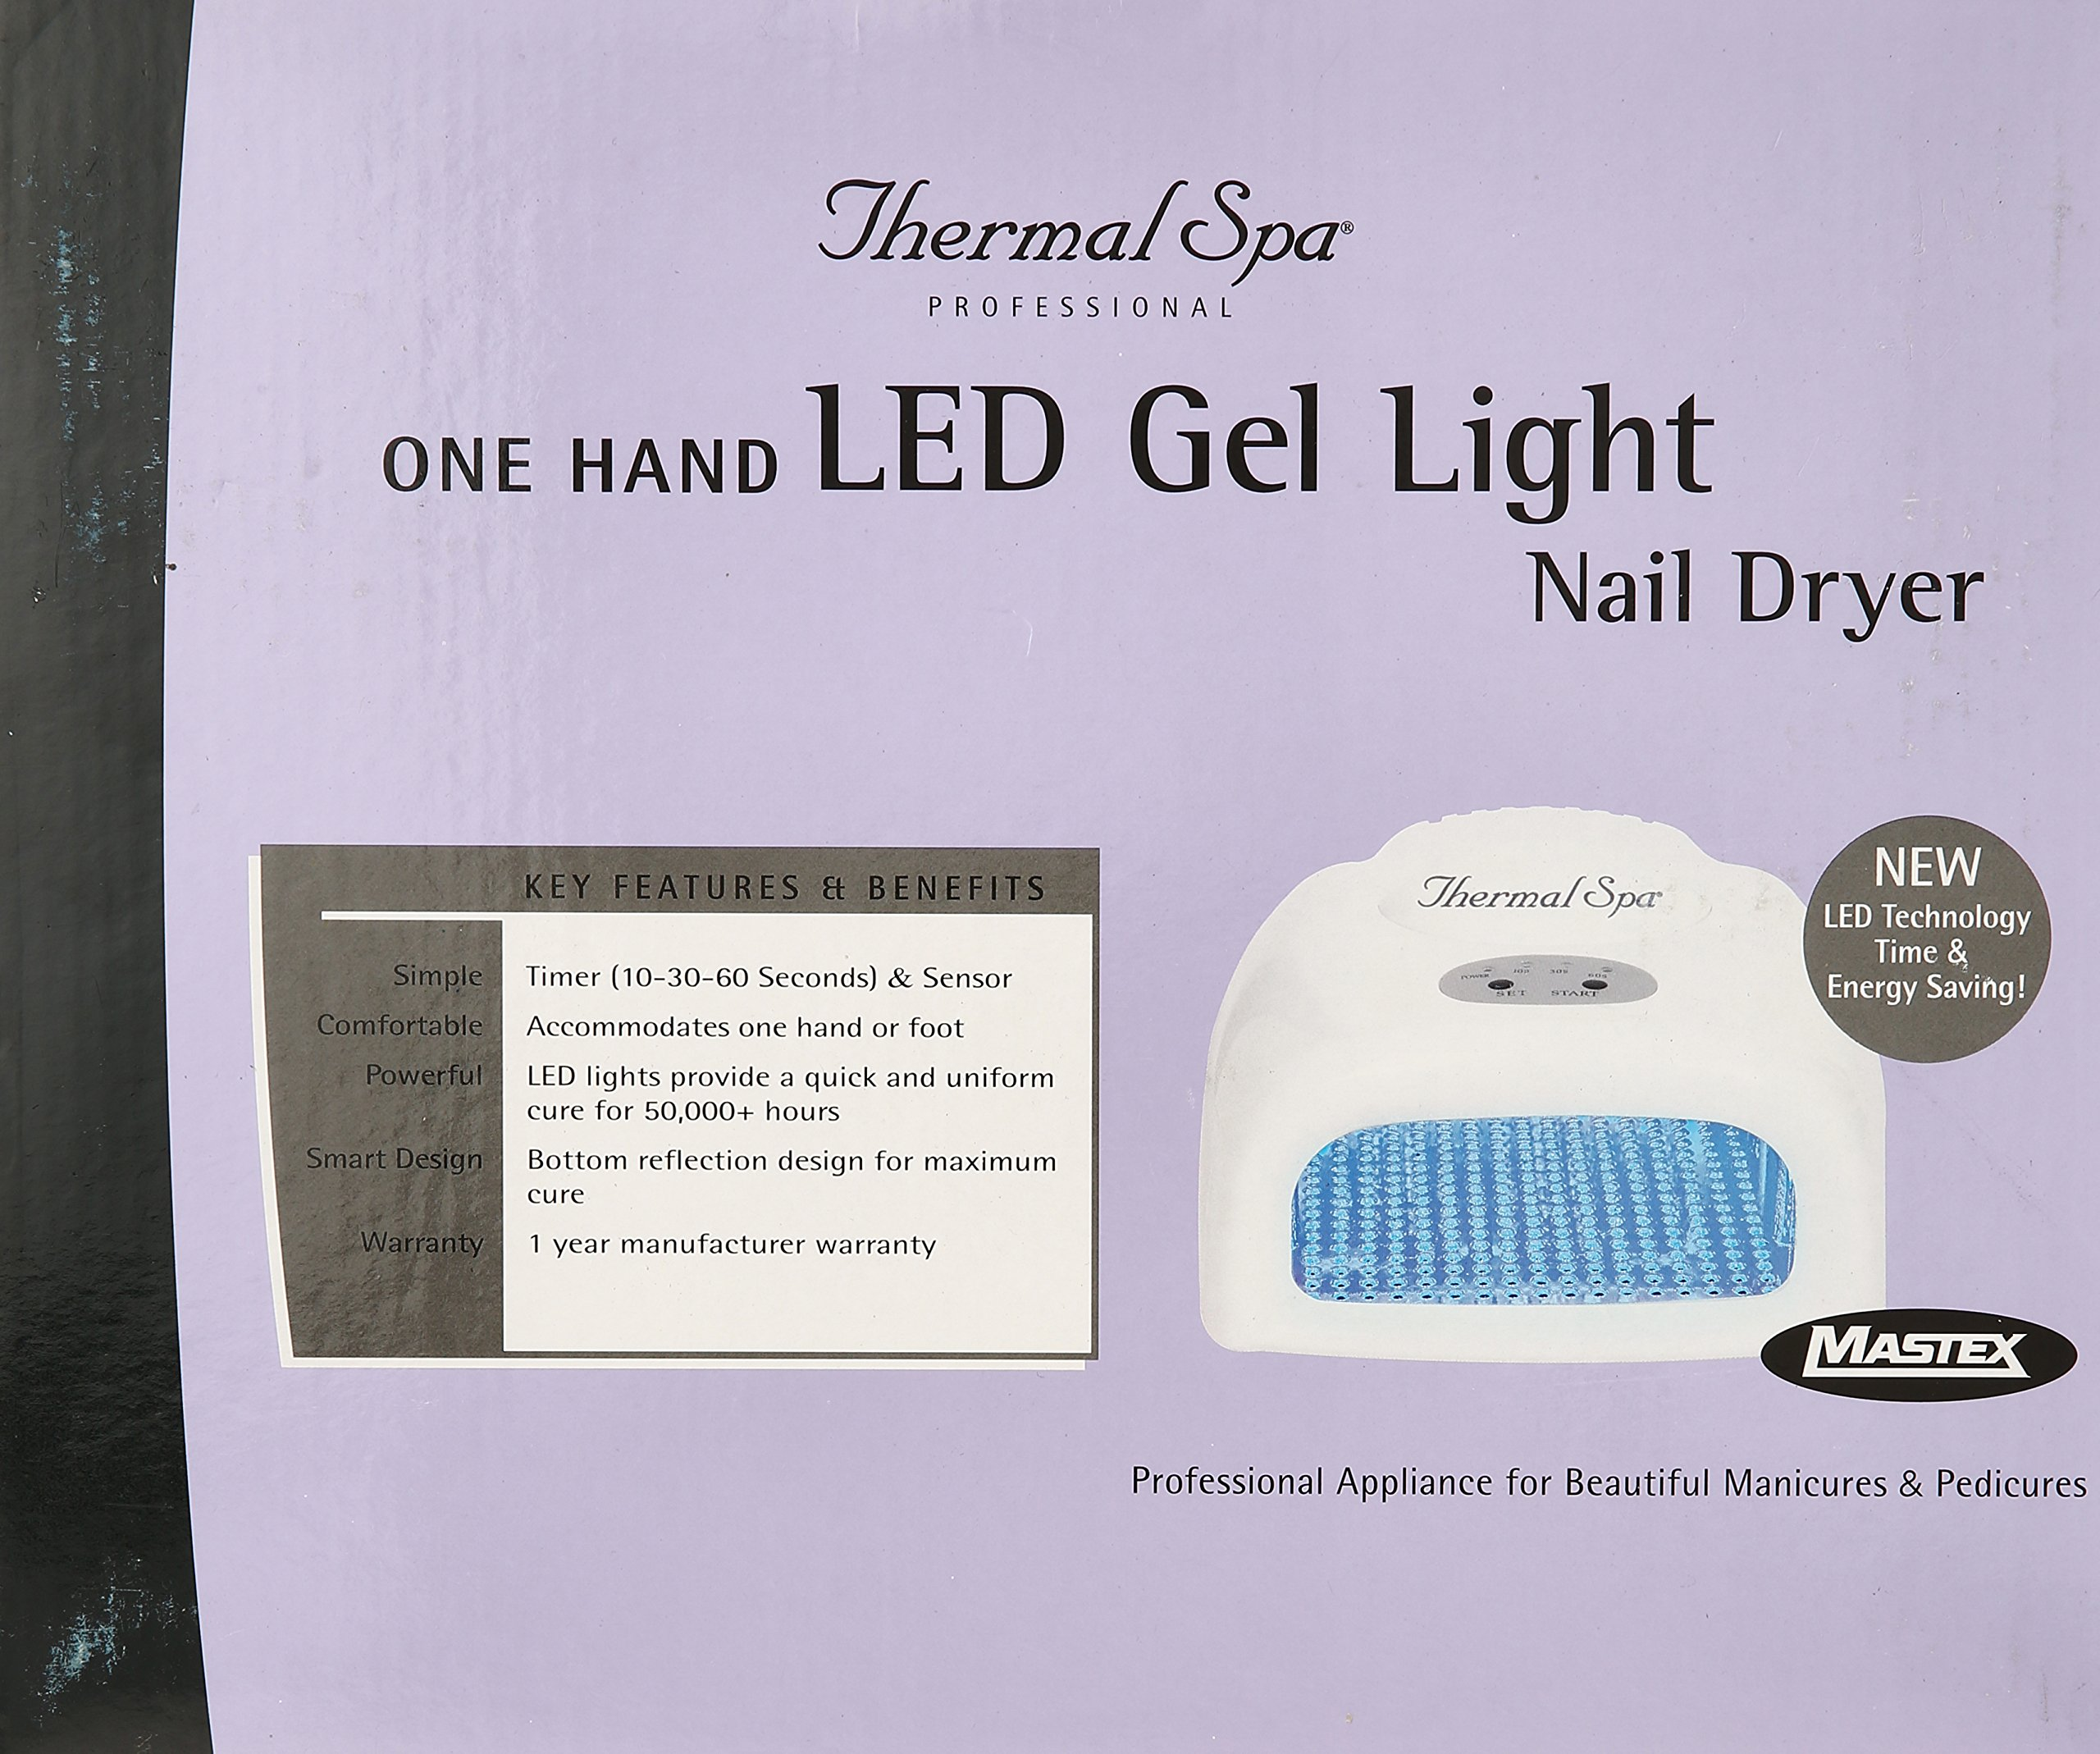 Thermal SPA One Hand Led Gel Light Nair Dryer by Thermal Spa (Image #2)